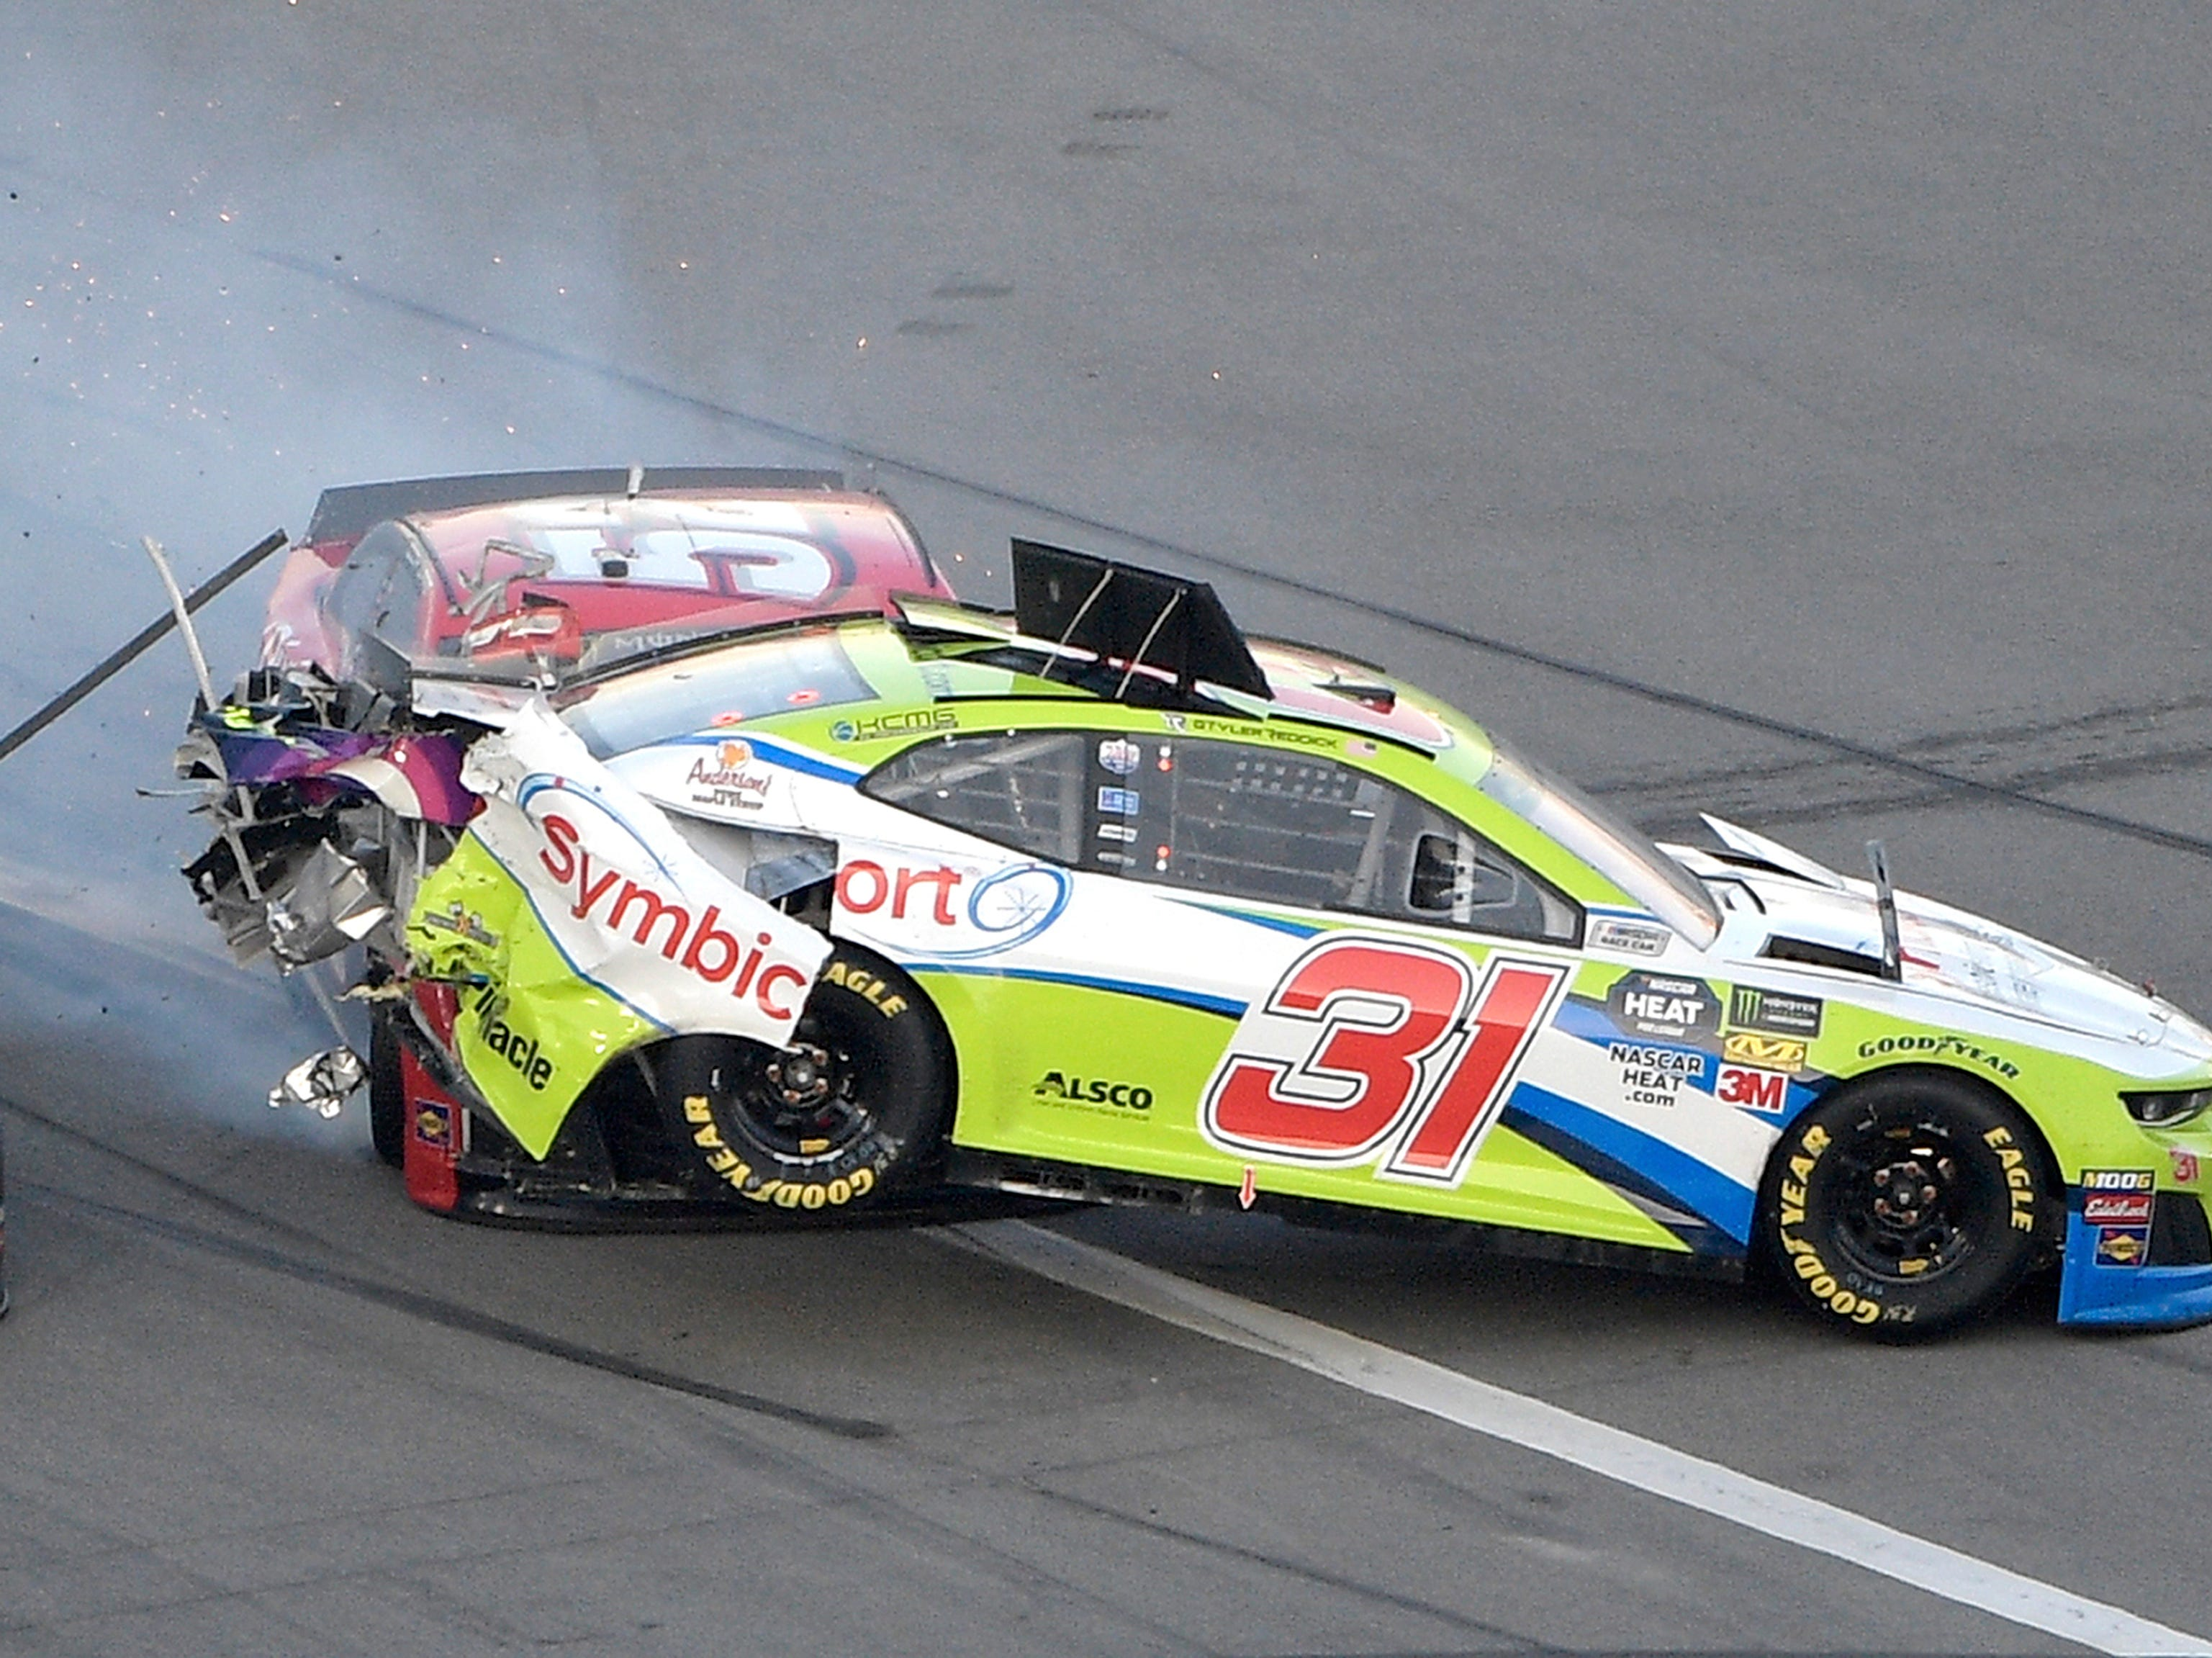 Tyler Reddick (31) is hit from behind by Cody Ware (52) during a NASCAR Daytona 500 auto race at Daytona International Speedway.